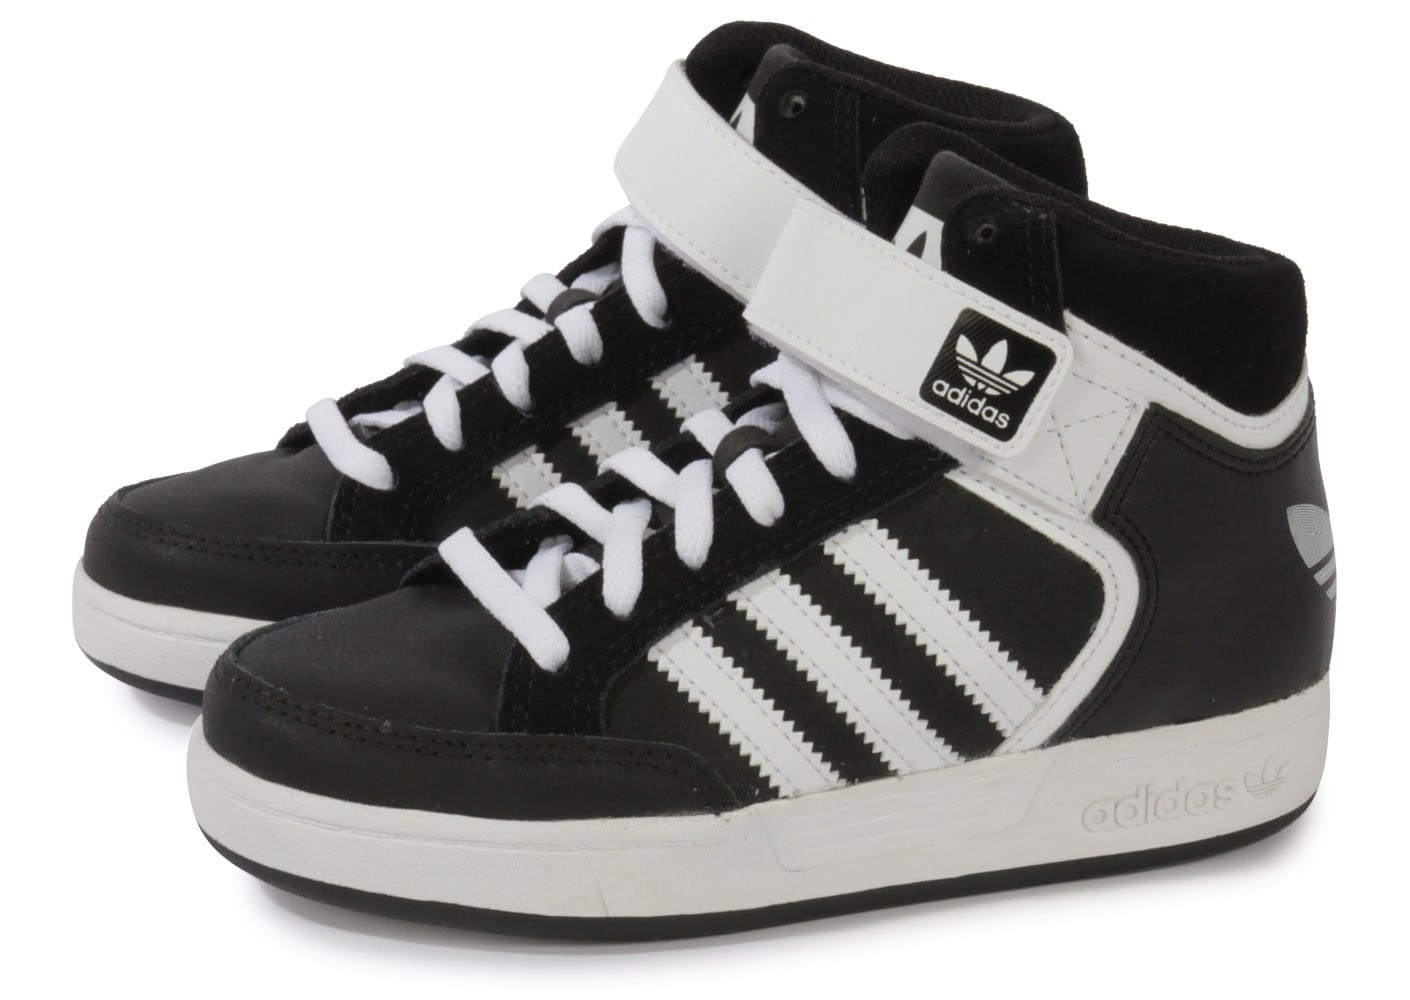 adidas Varial Mid Enfant Noire Chaussures adidas Chausport